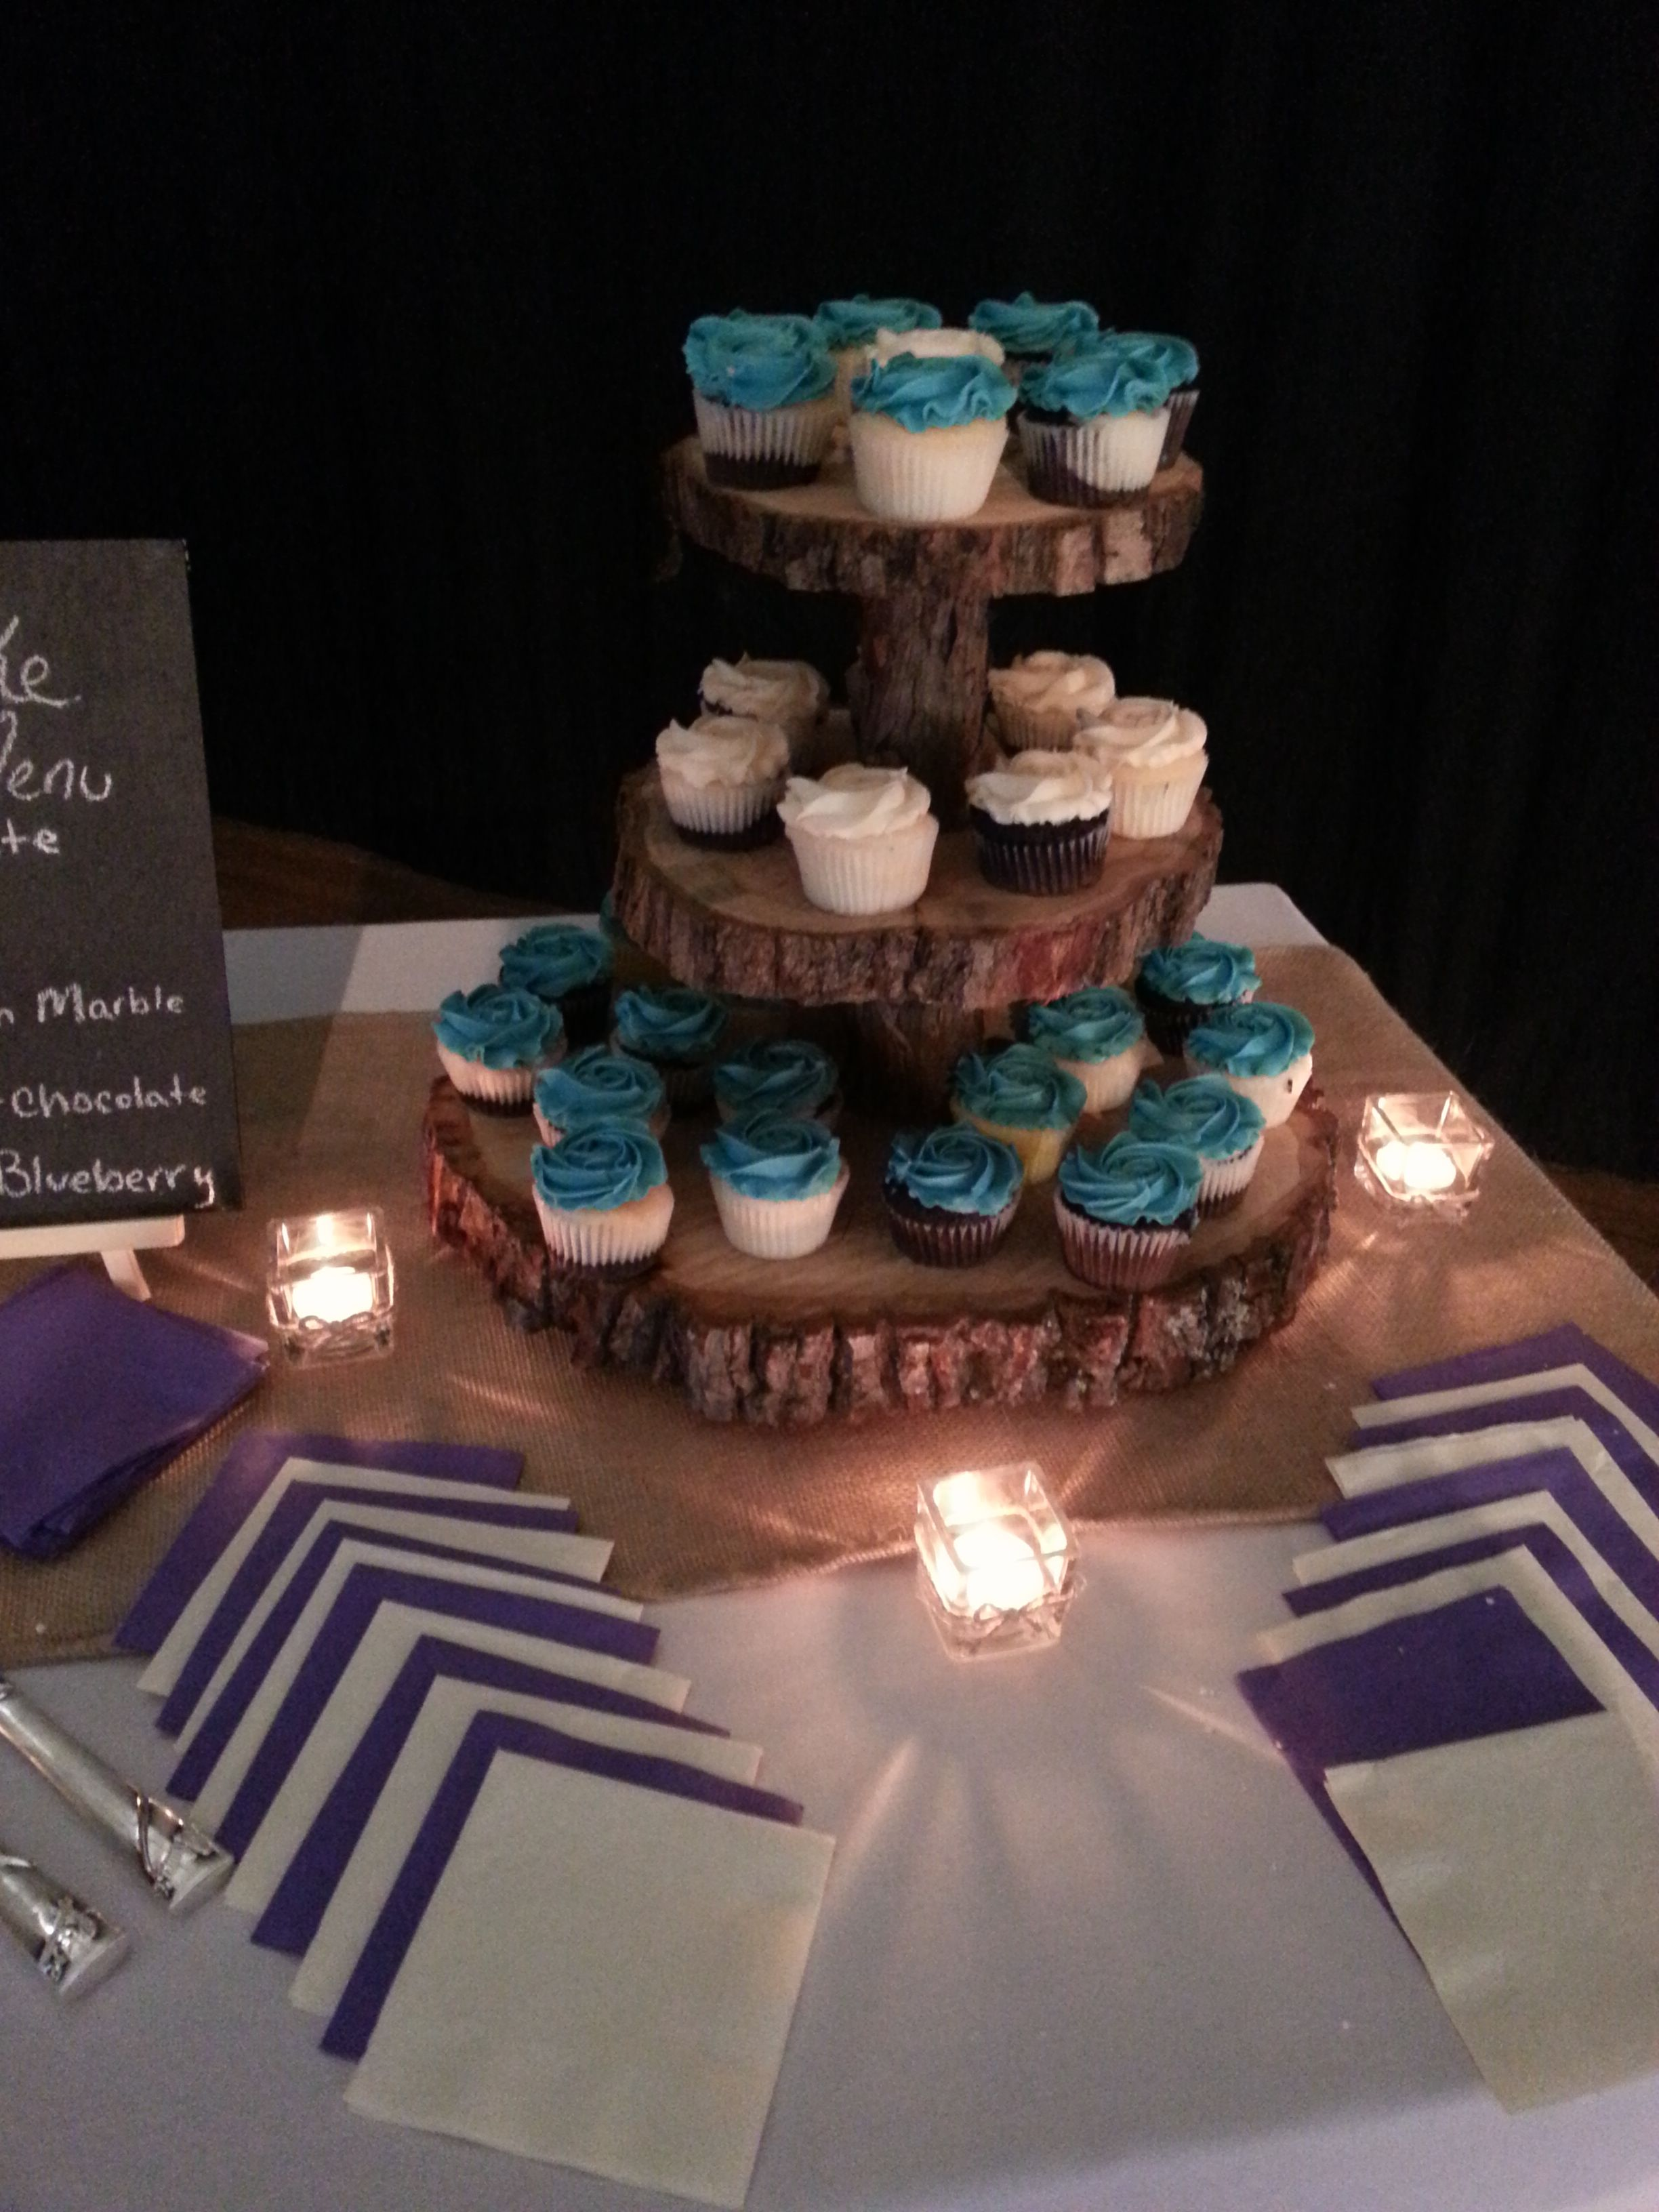 3 tiered rustic cake and cupcake stand available for rent for your